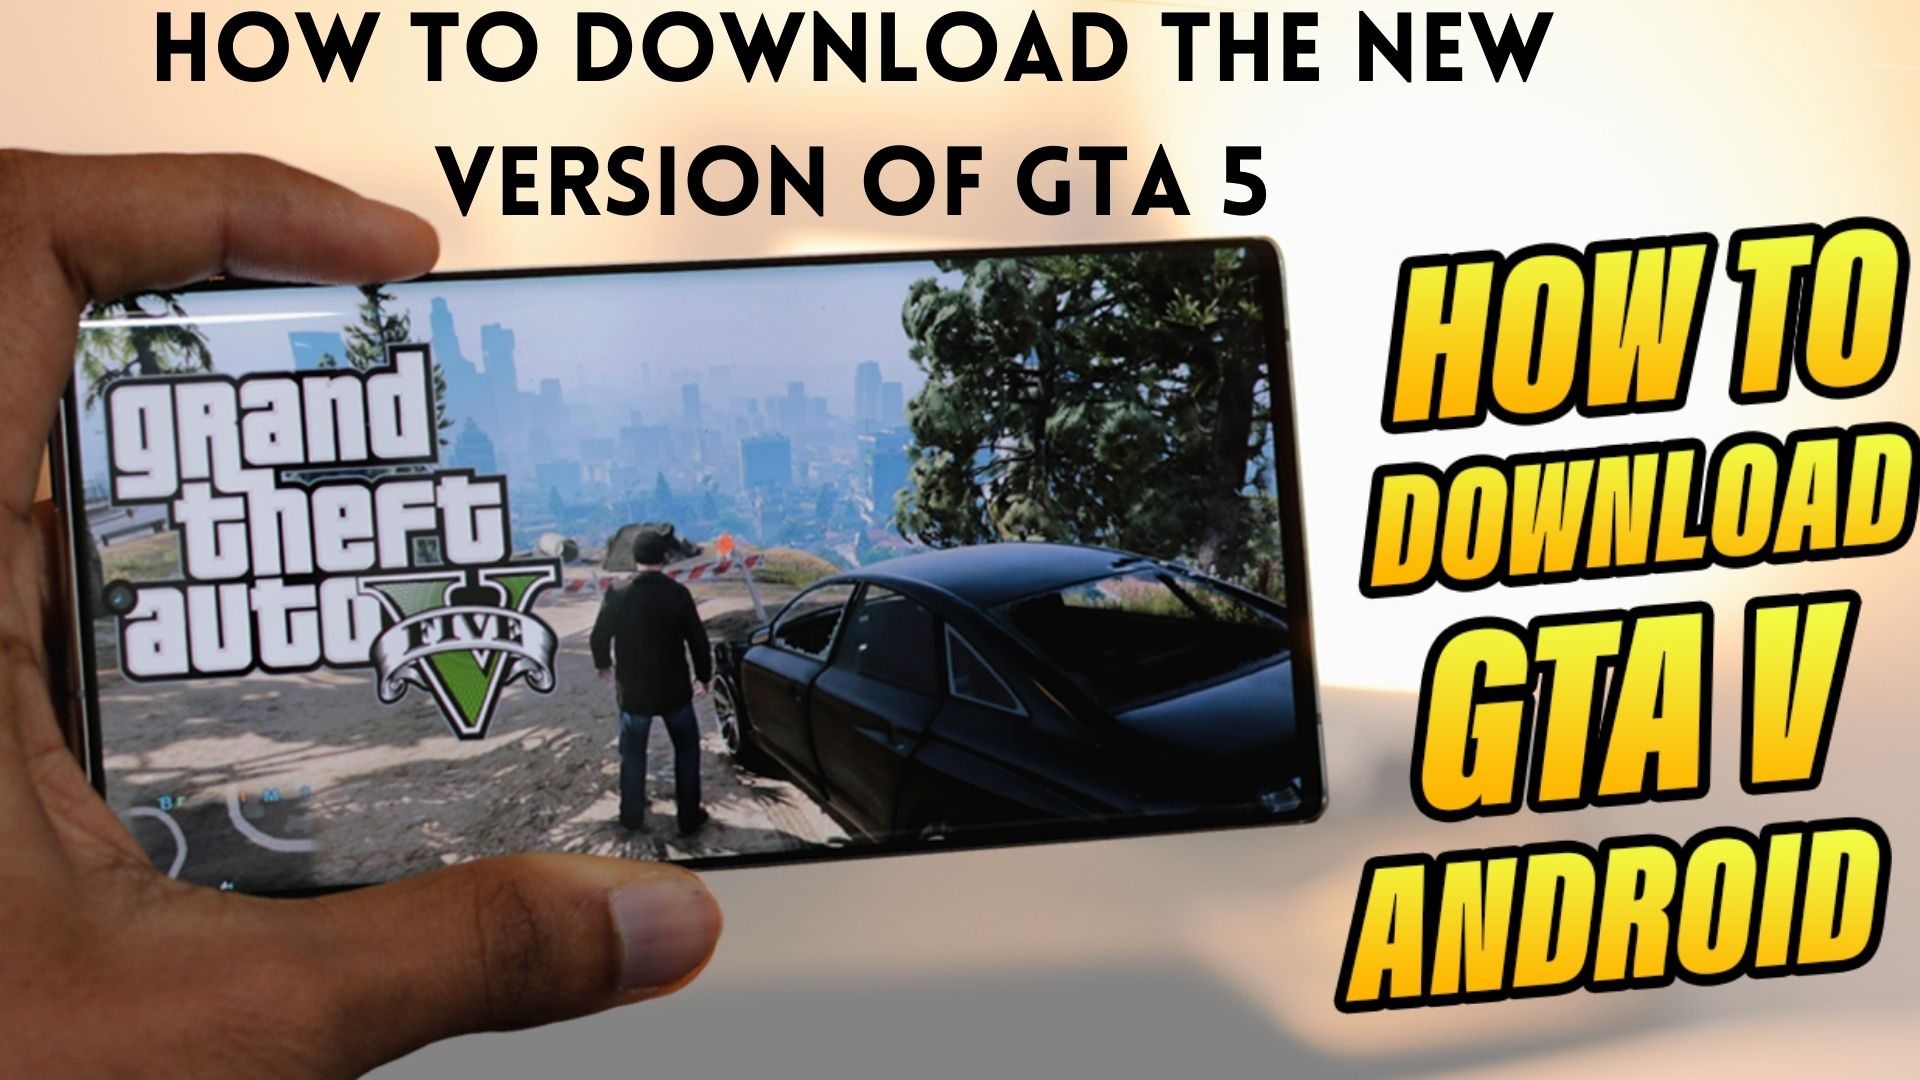 How to download the version of GTA 5